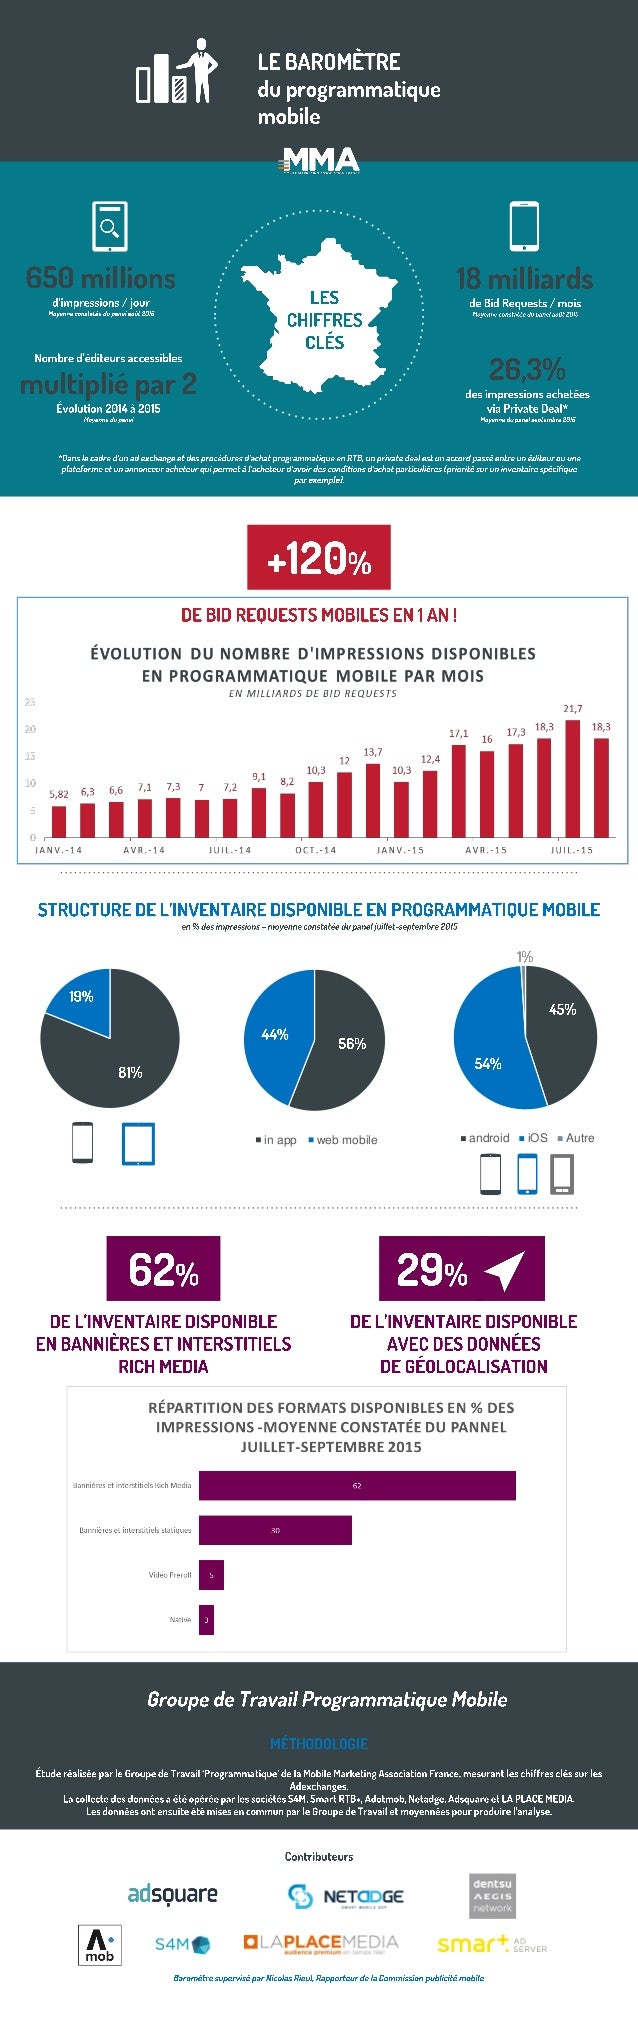 in app web mobile android iOS Autre